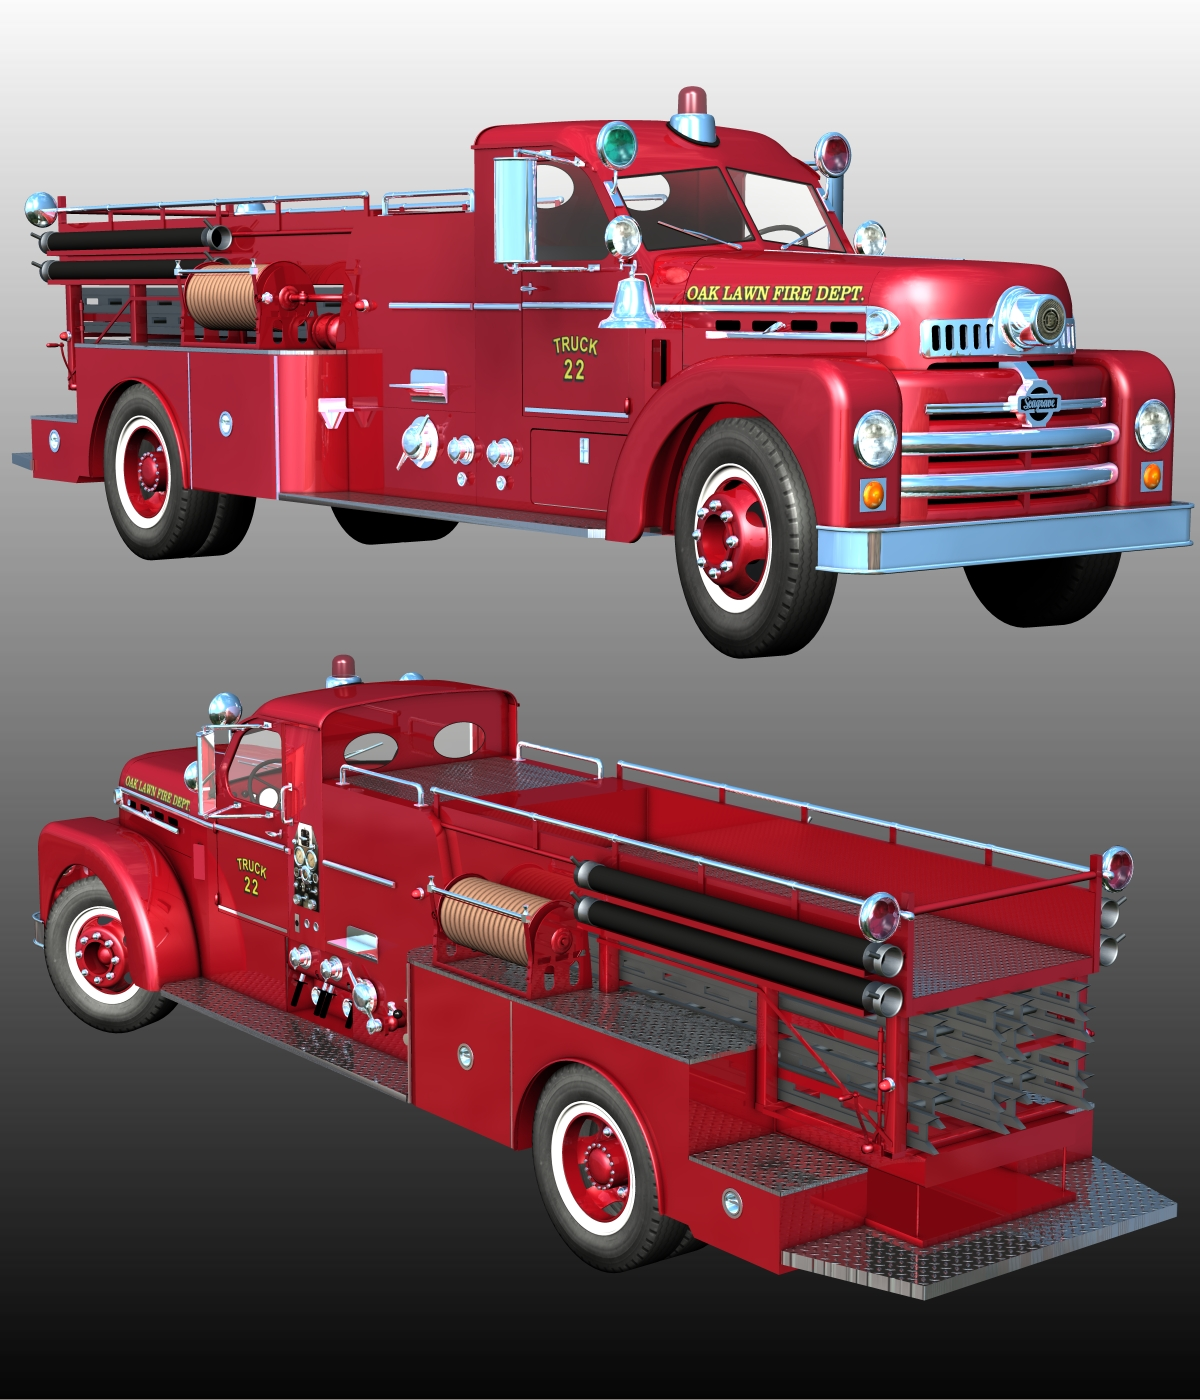 SEAGRAVE 1955 by 3DClassics